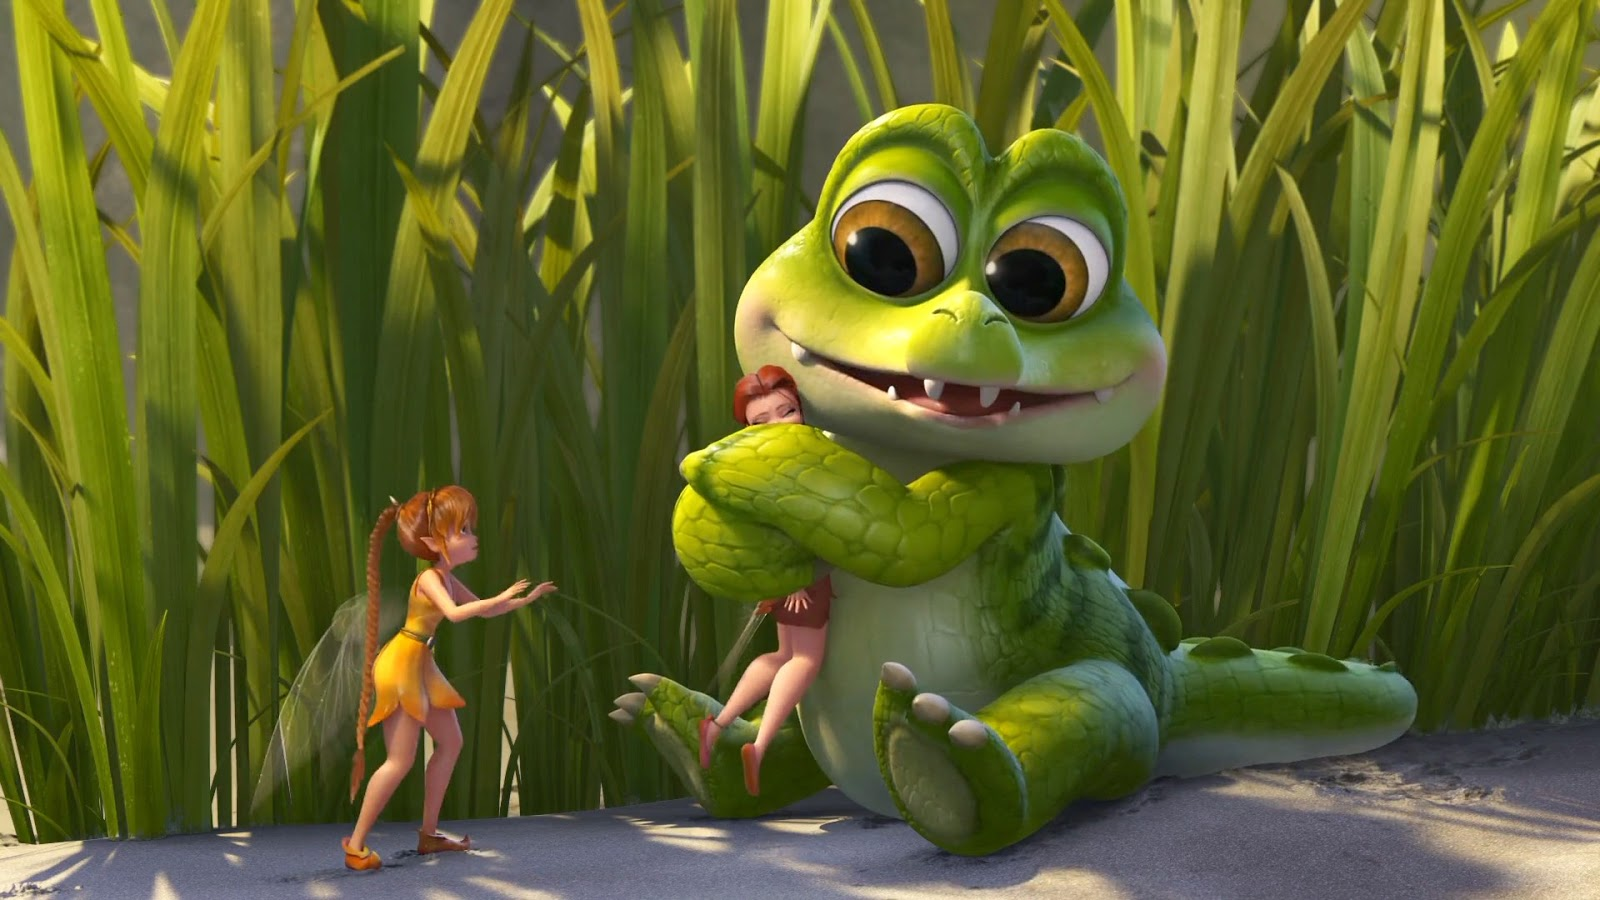 Tinker Bell And The Pirate Fairy (2014) S3 s Tinker Bell And The Pirate Fairy (2014)